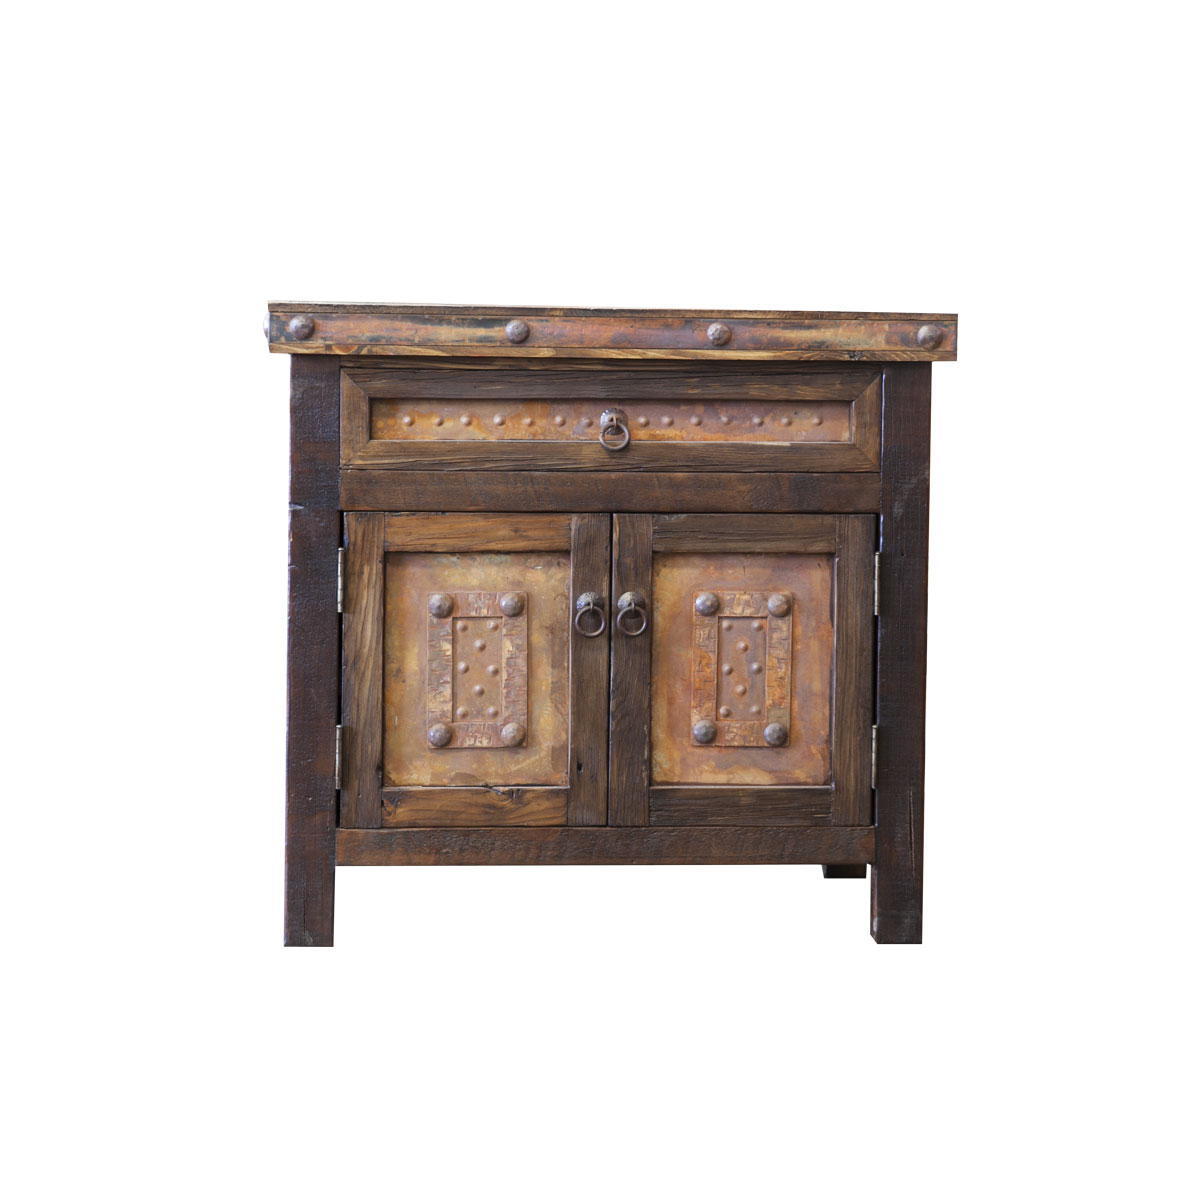 Buy reclaimed vanity with metal online for Buy reclaimed wood online